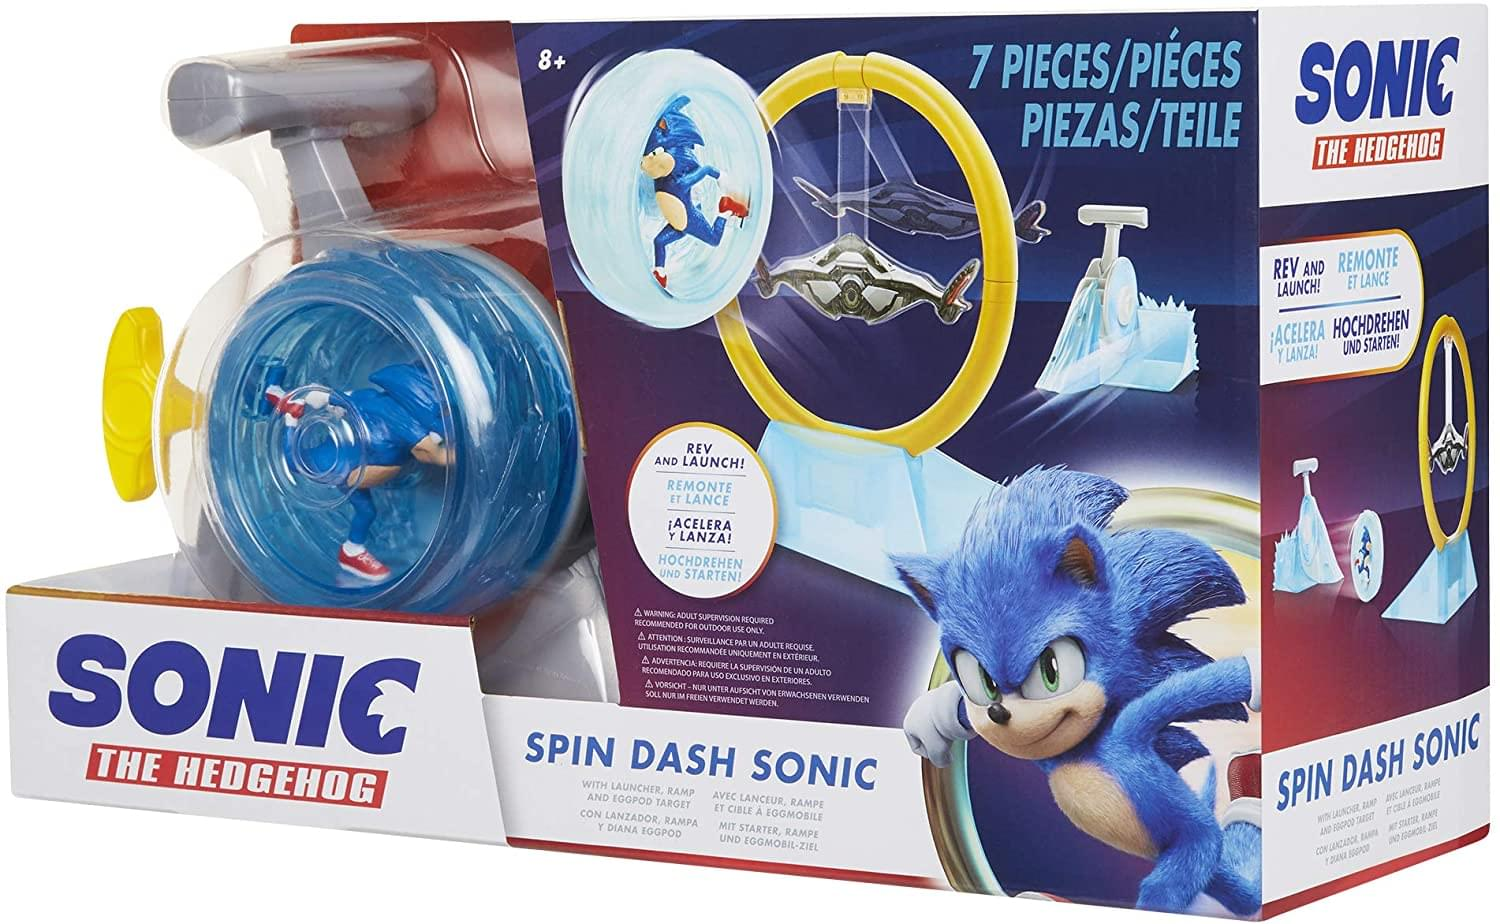 Sonic The Hedgehog Spin Dash Sonic Rev And Launch Toy Toynk Toys